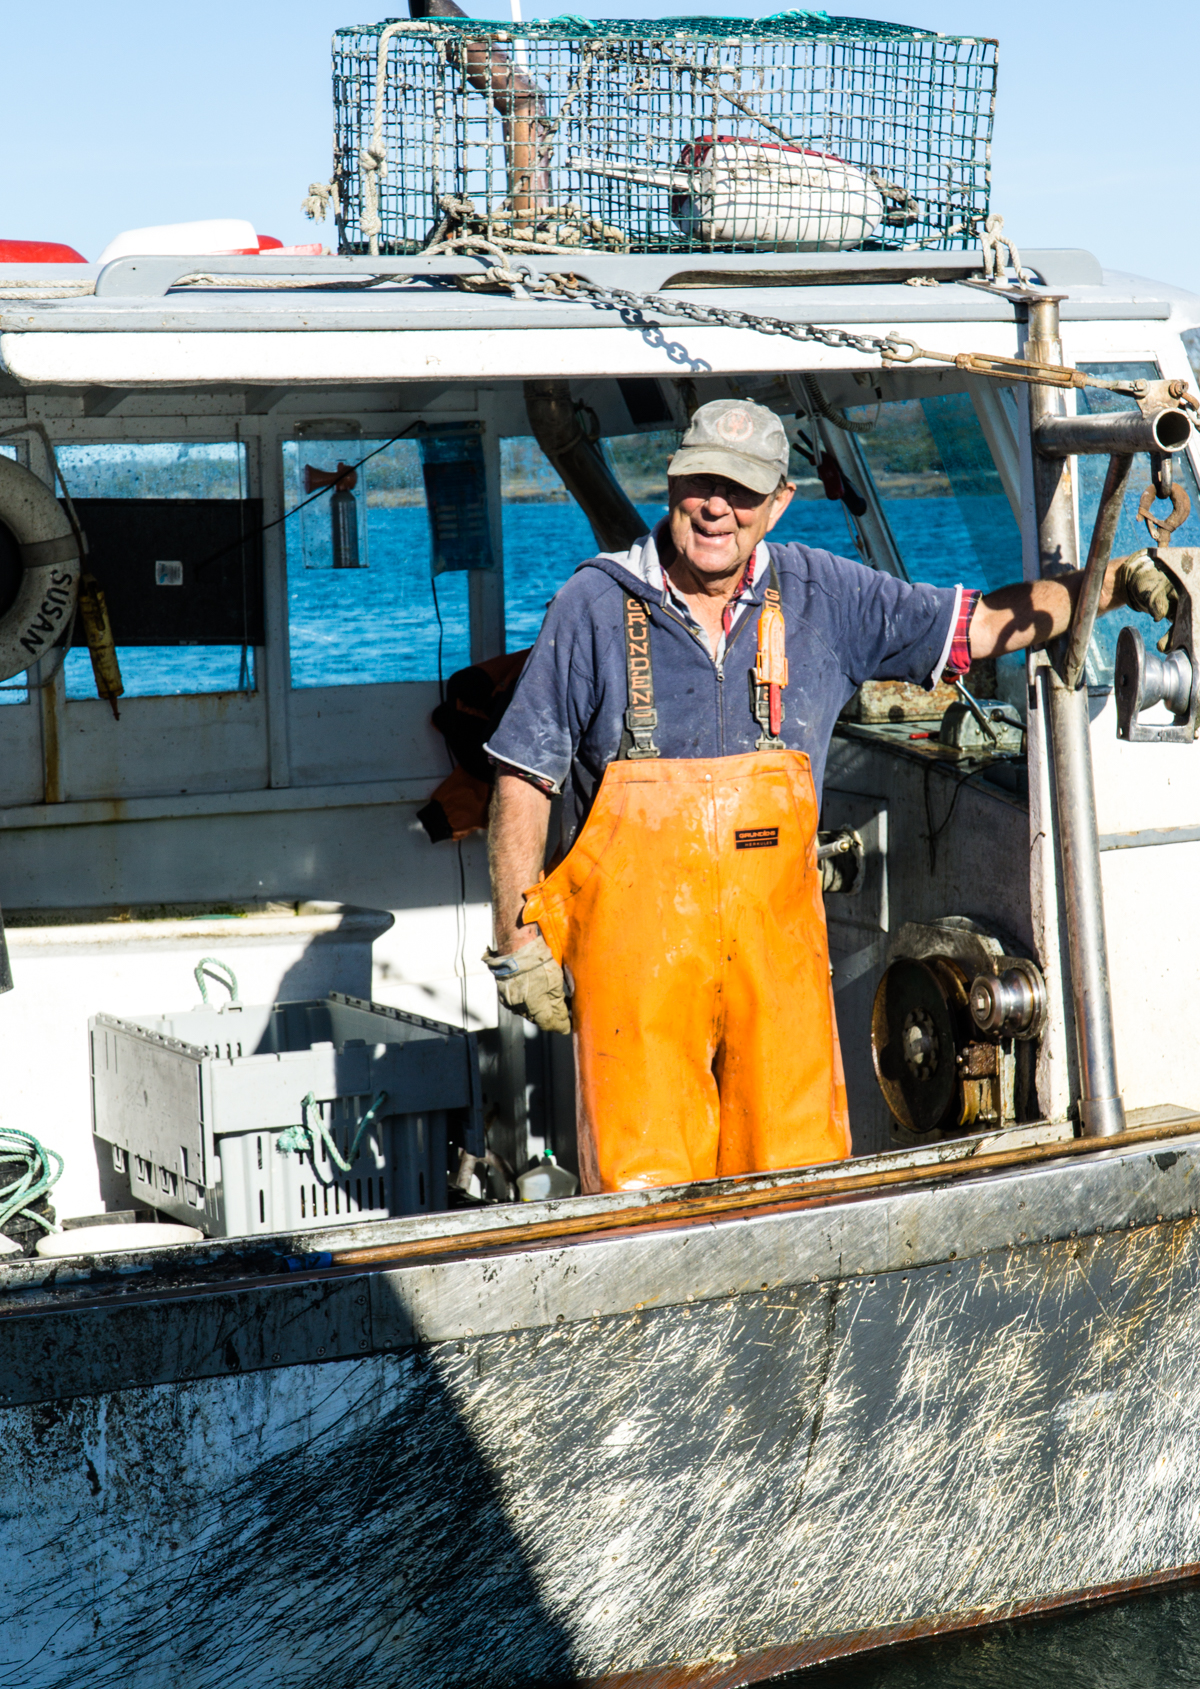 Maine Lobster redefined - Meet Entrepreneur John Jordan